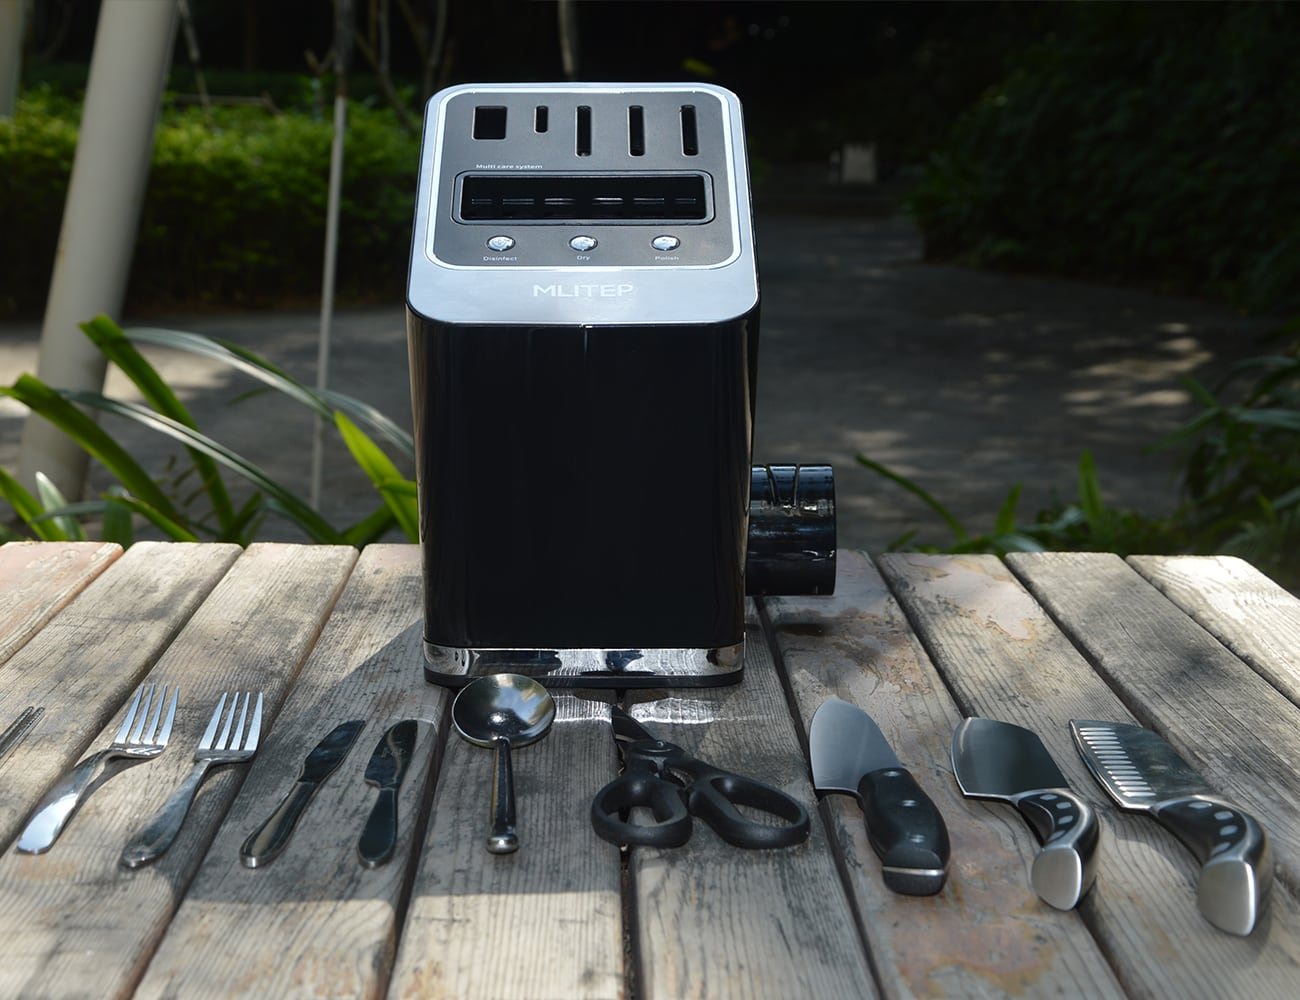 MLITER S20 Electric Multifunctional Knife Sterilizer